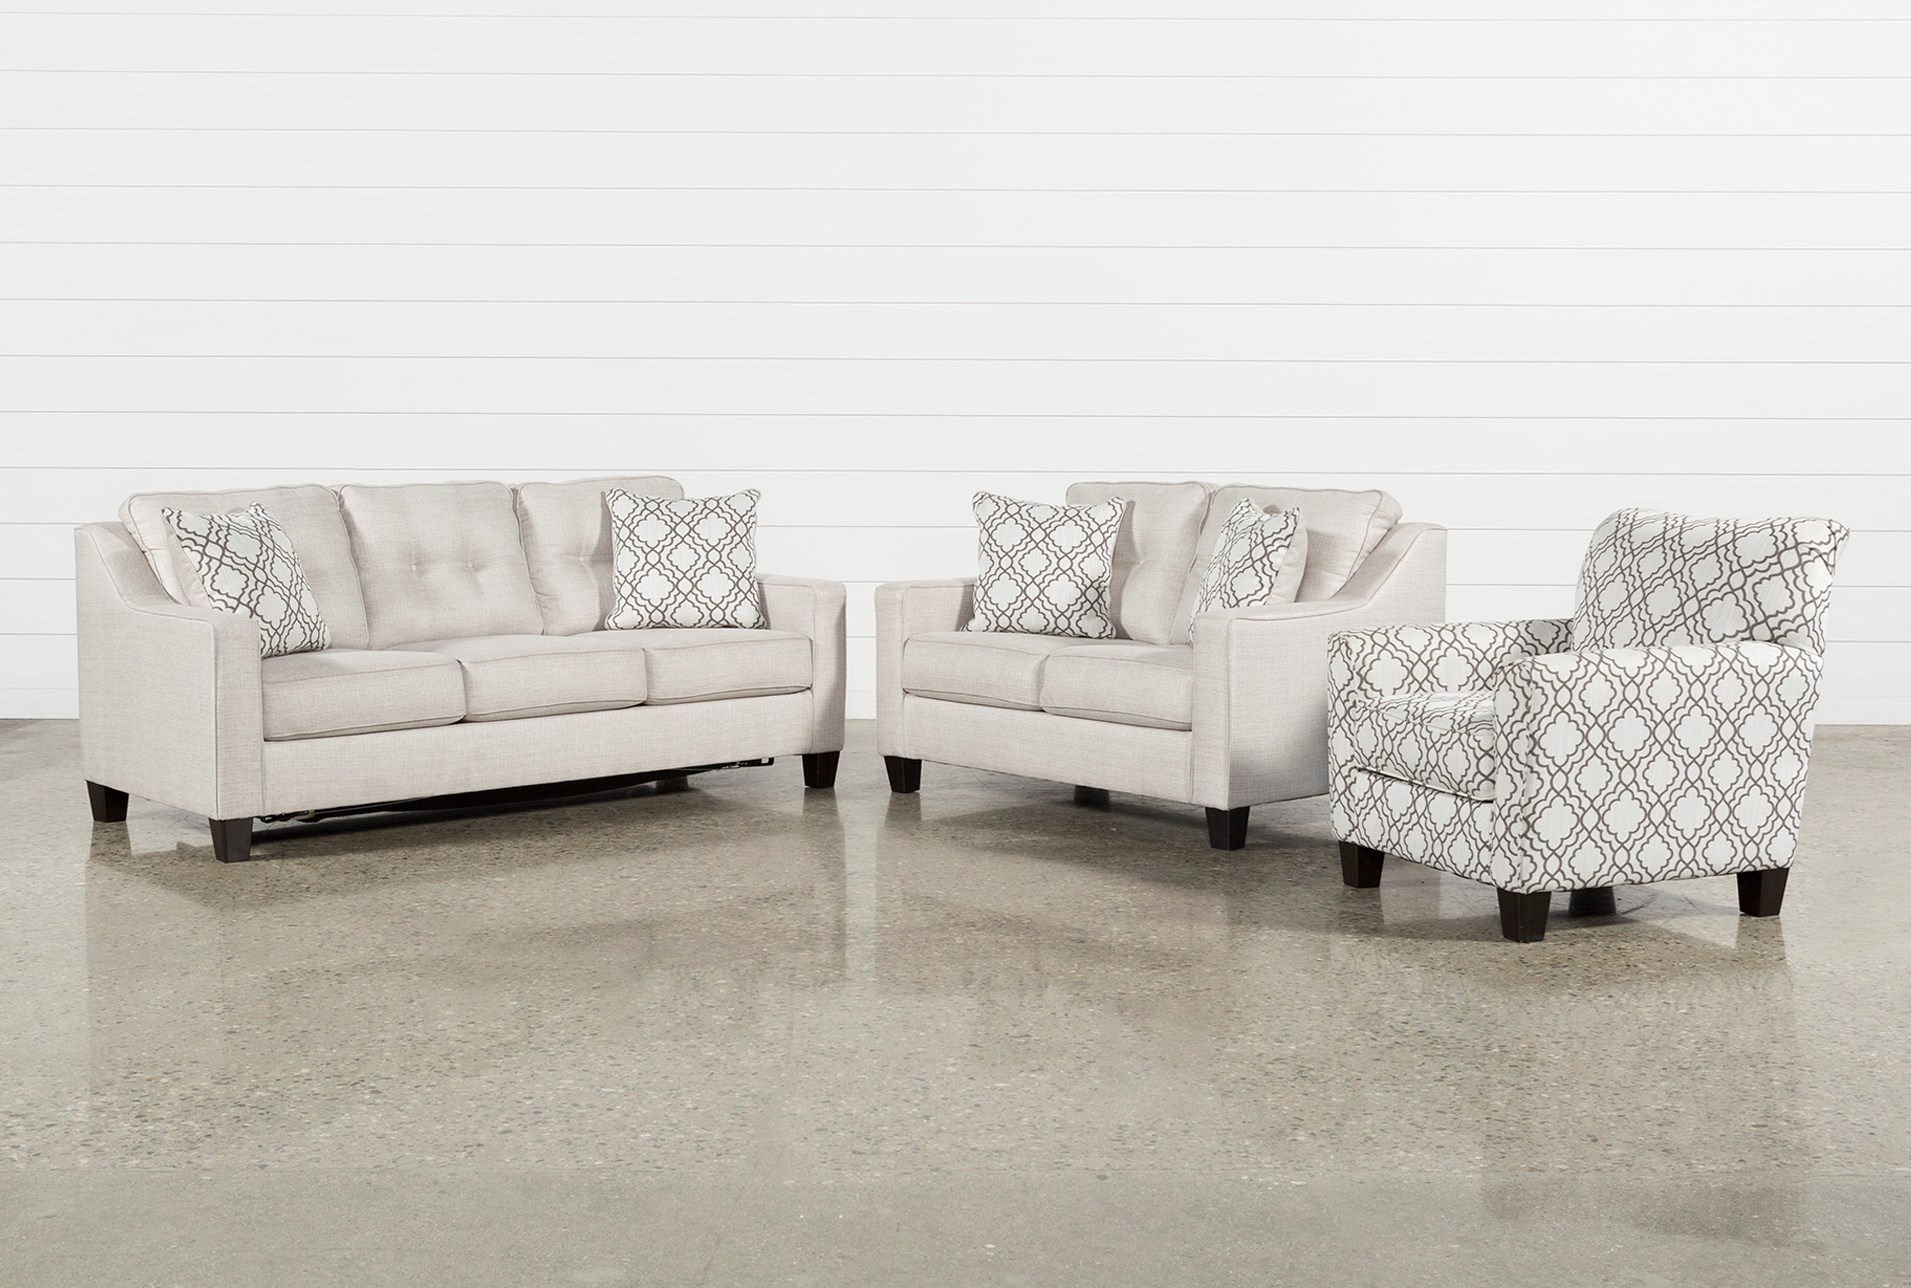 Linday Park 3 Piece Living Room Set With Queen Sleeper And Accent Chair